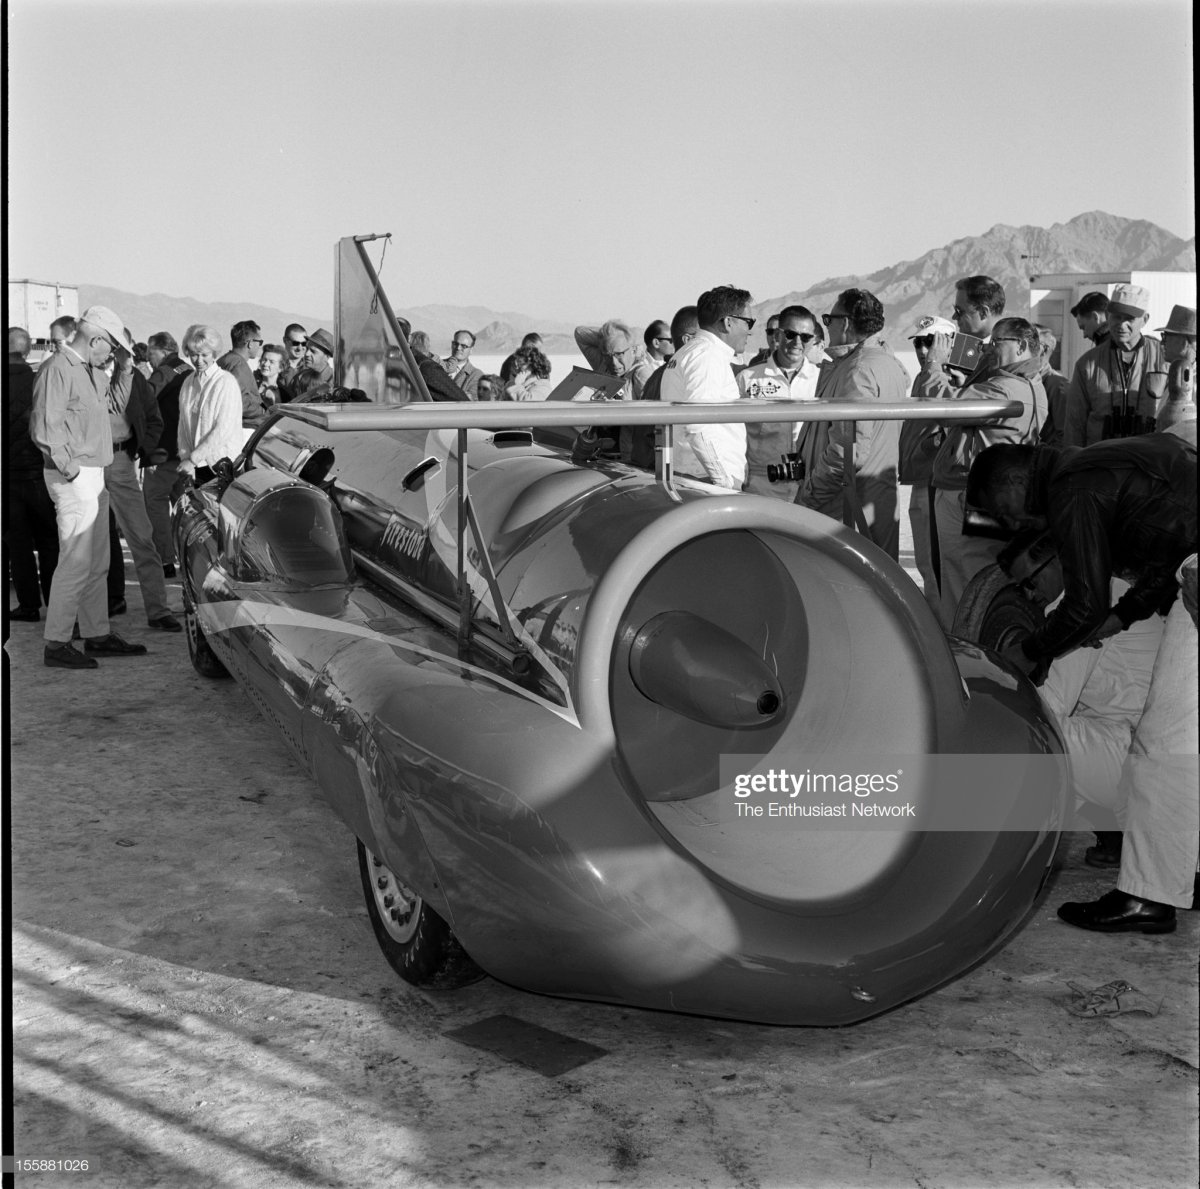 60 Art Arfons Land Speed Record Jet Car.jpg